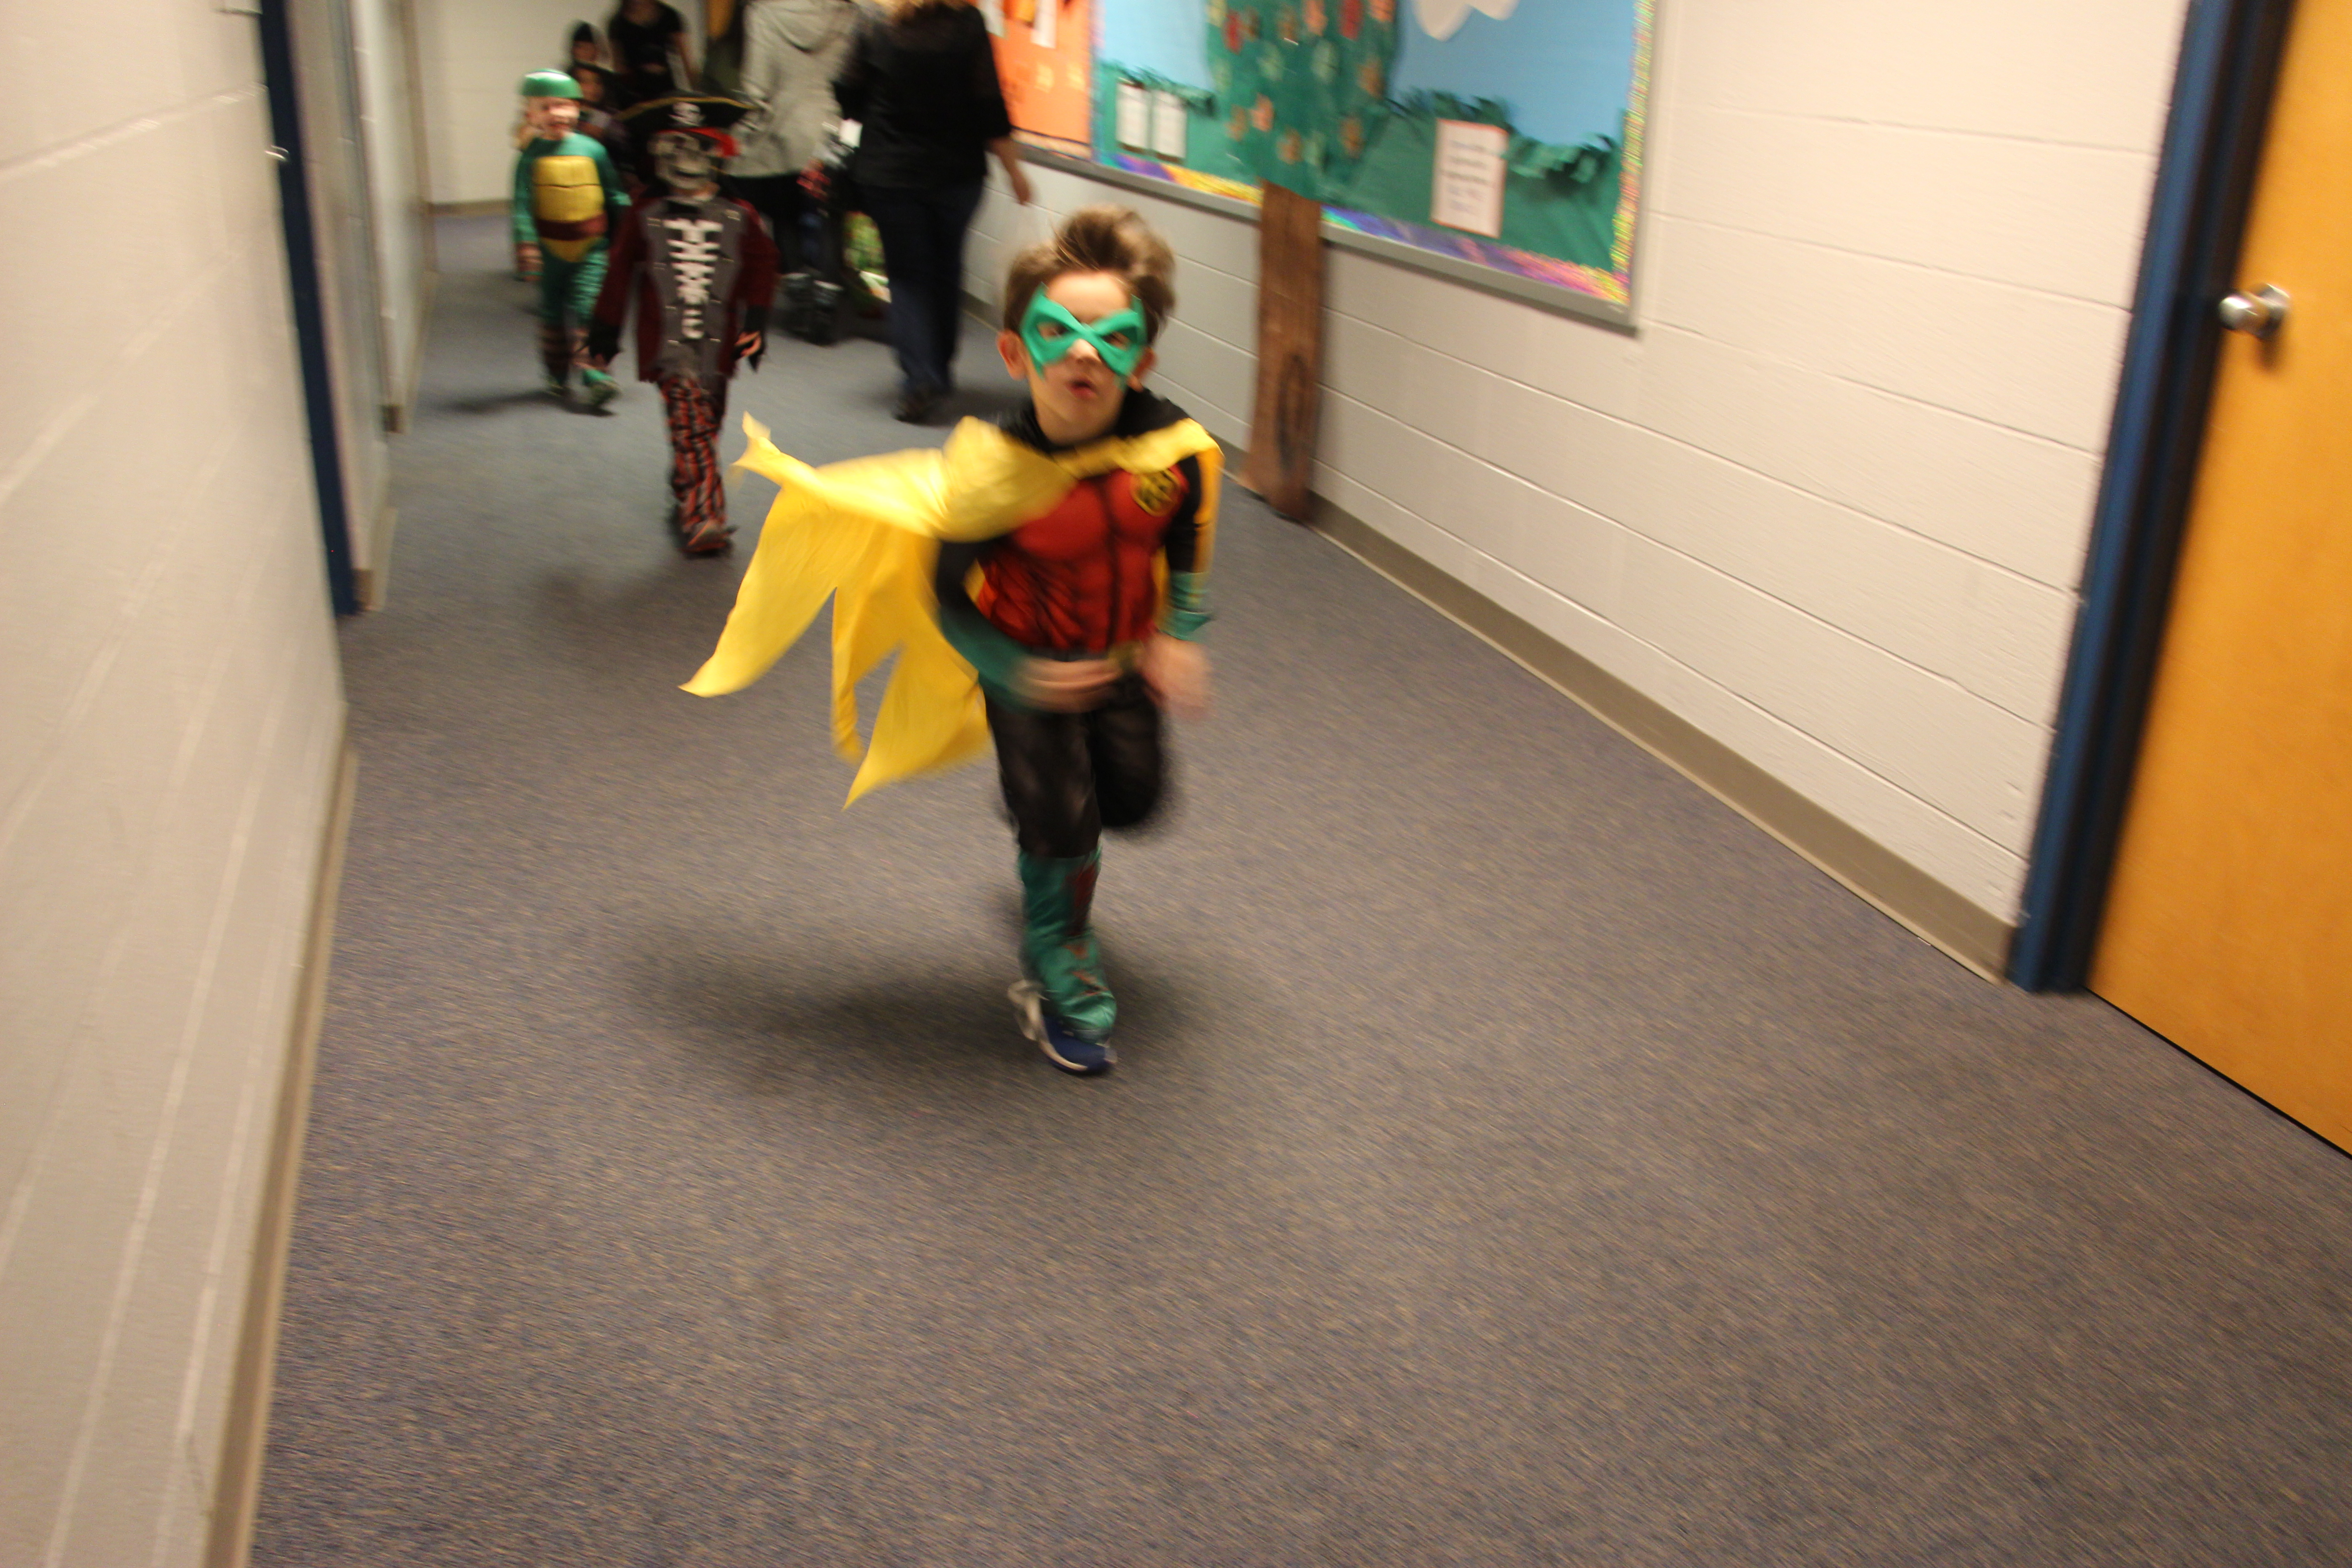 A student wears a Robin costume.